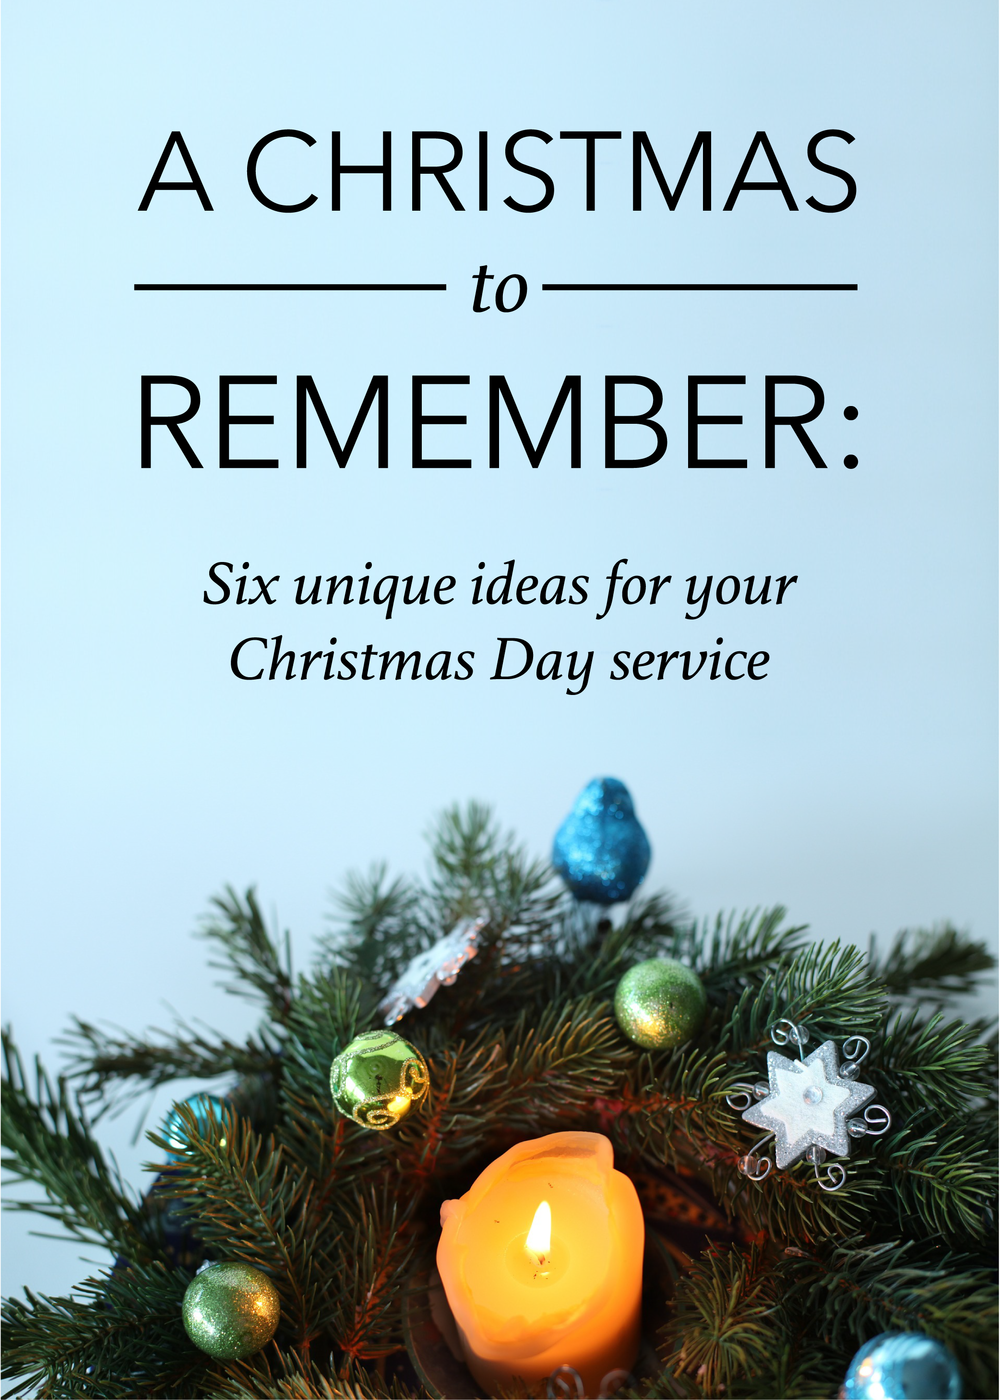 A Christmas to remember: Six fun, unique ideas for your Christmas Day service (service projects, family-friendly ideas, and more!) | @ashleydanyew